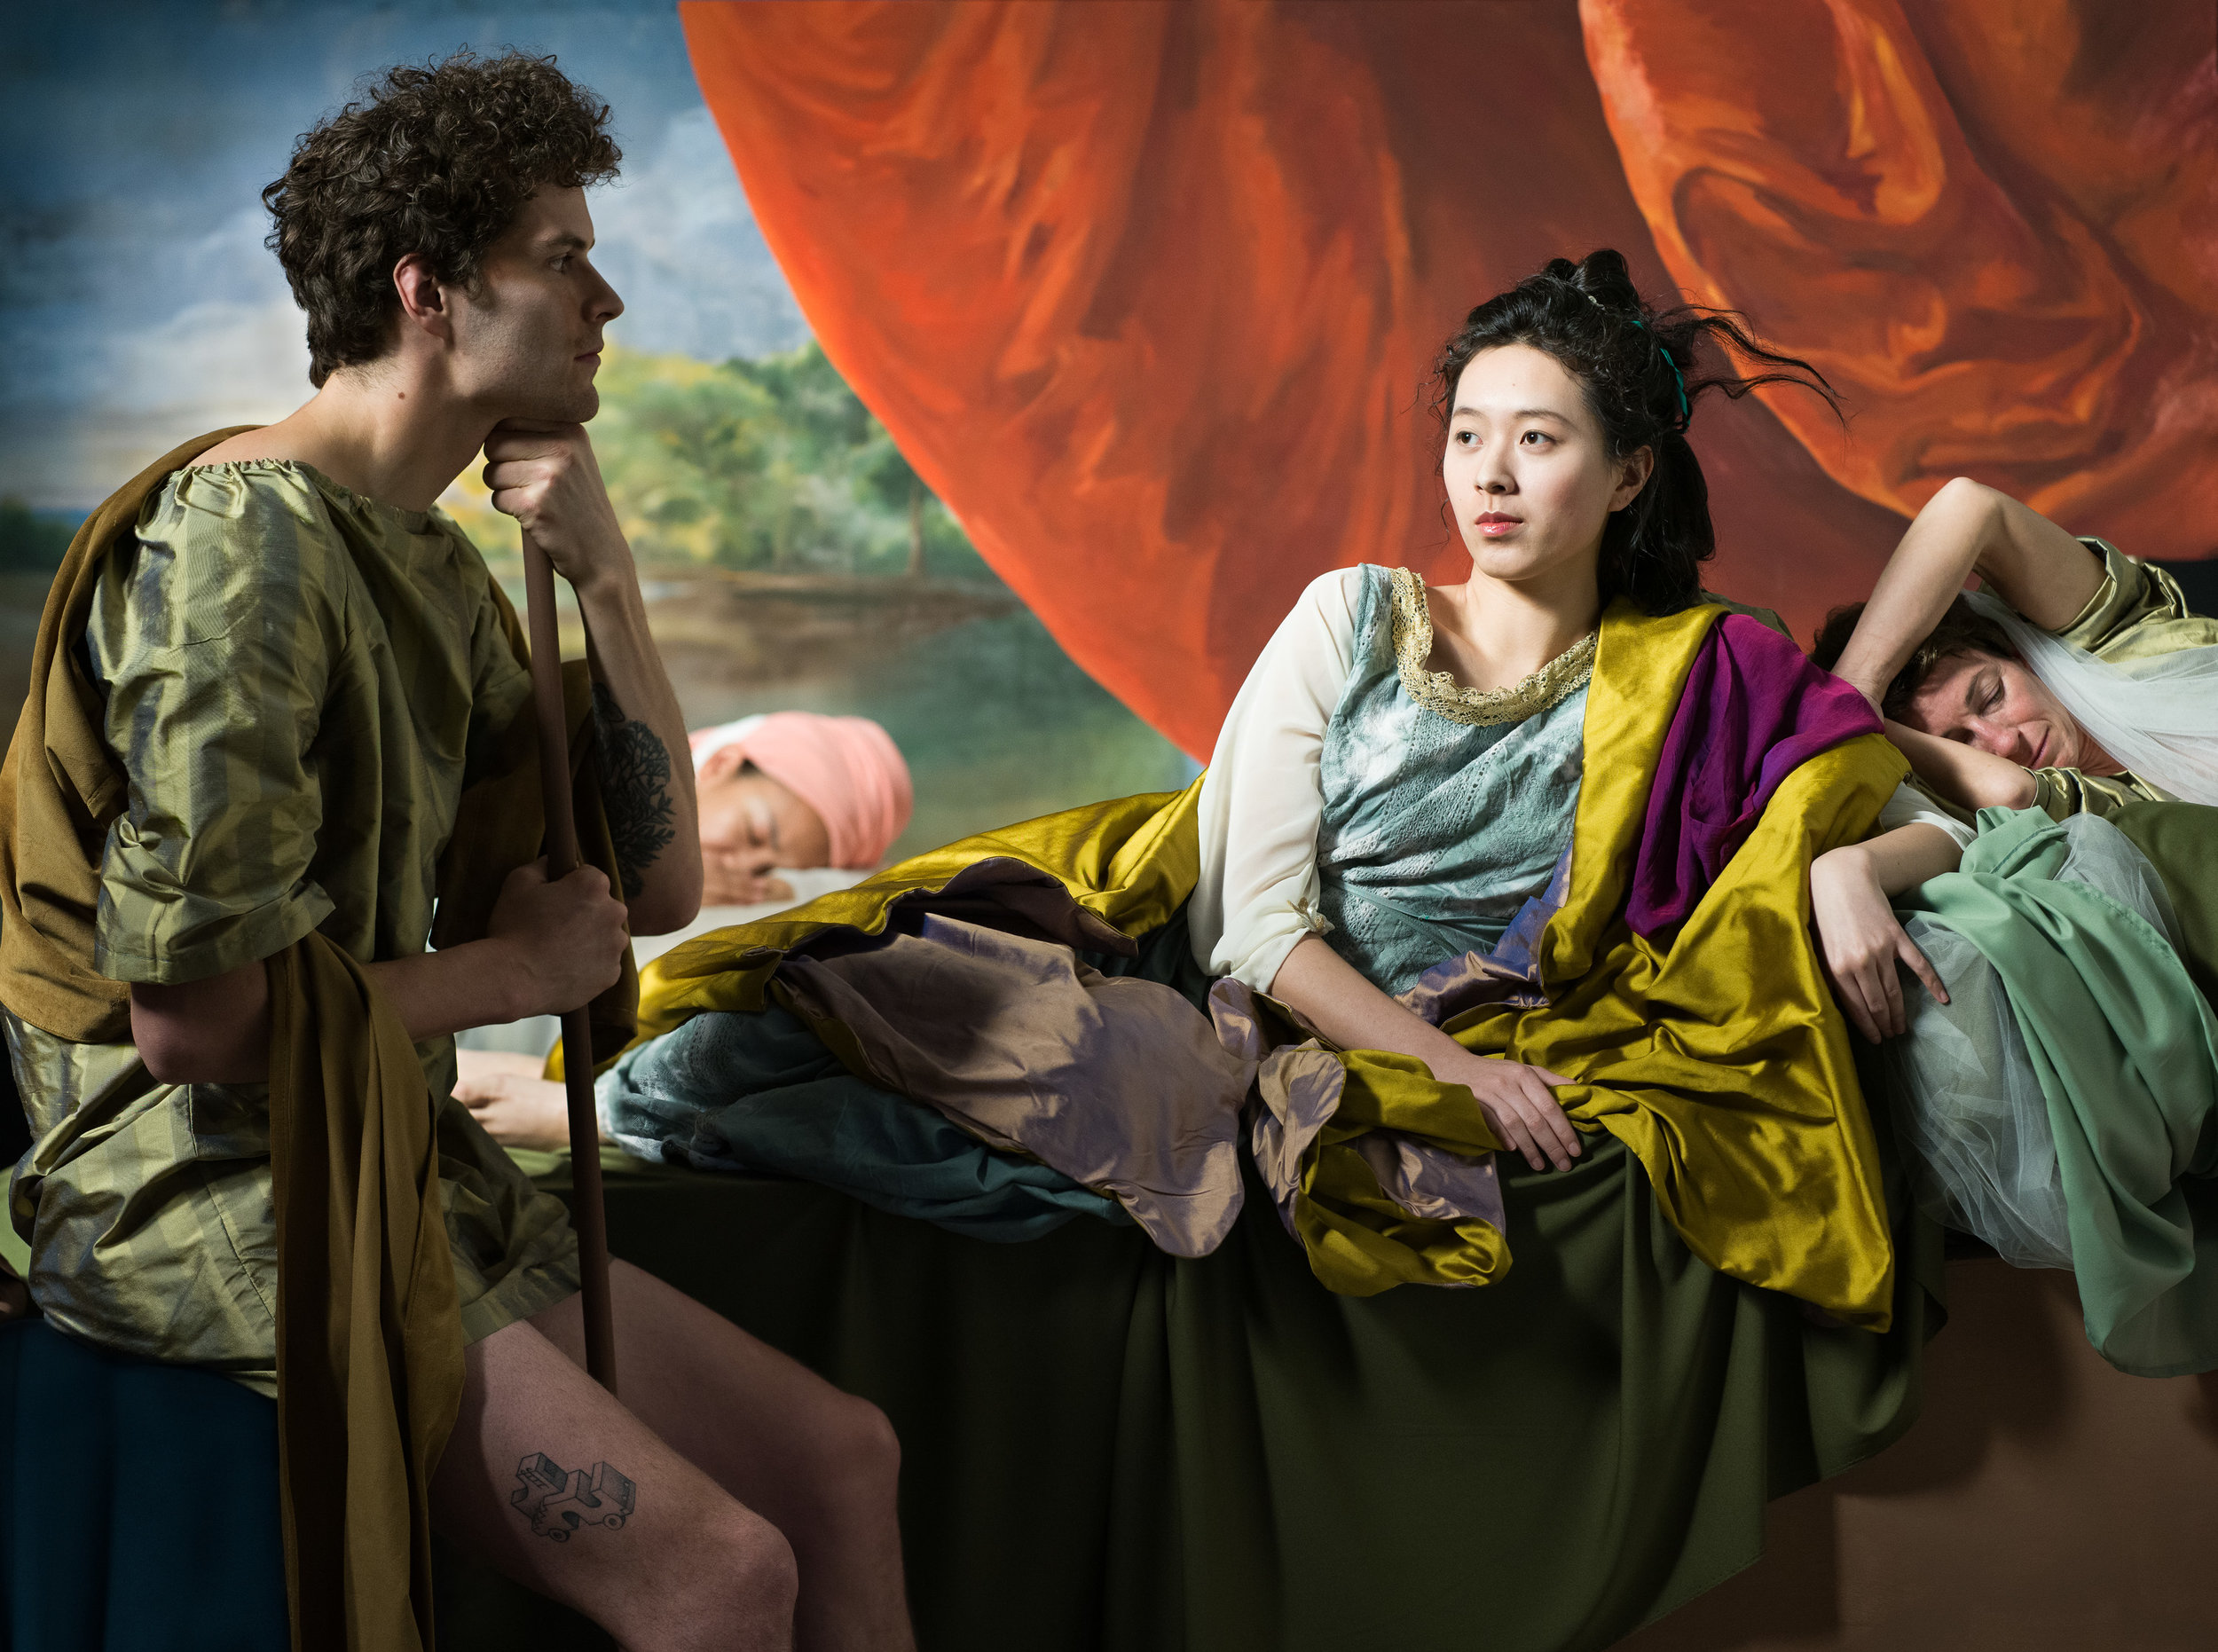 """The Decameron Retold (after Cymon and Iphigenia, Benjamin West)  2019, archival pigment print SMALL 26"""" x 34.5"""", MEDIUM 39"""" x 52"""", LARGE 52"""" x 69.25"""" All sizes combined edition of 5"""